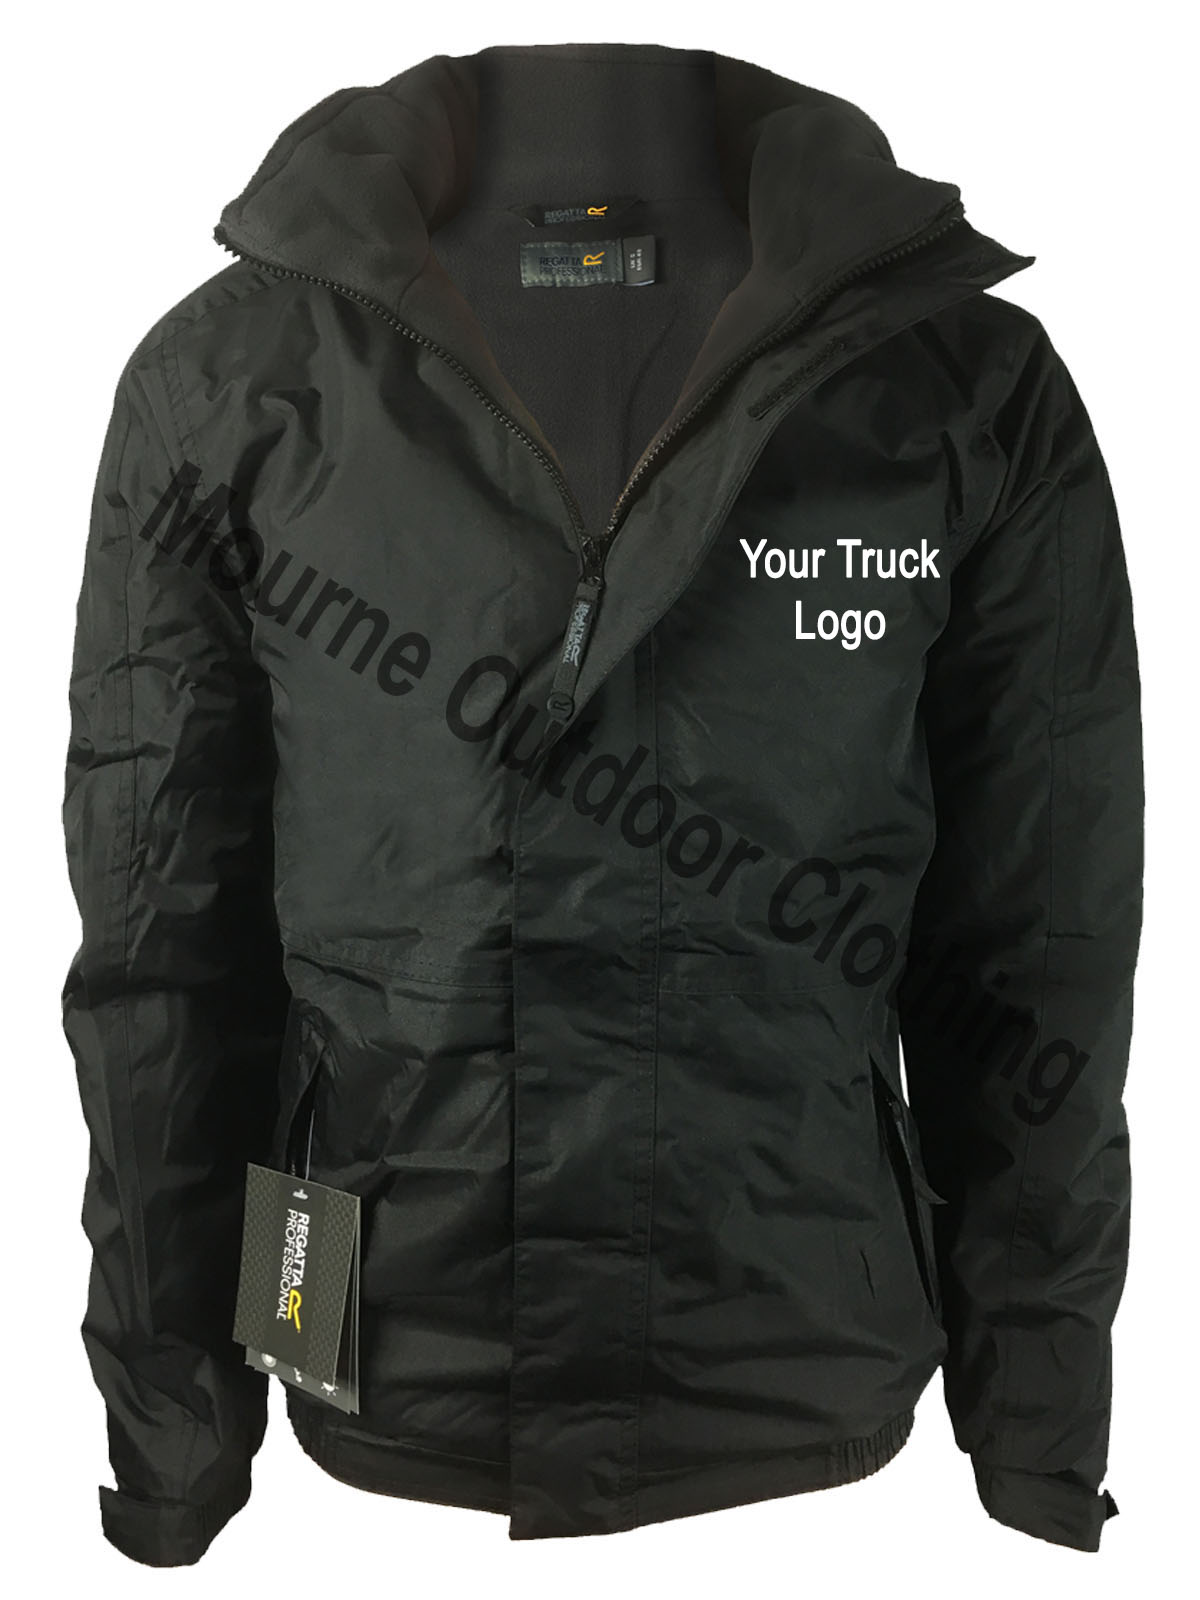 Regatta Custom Truck Waterproof Jacket Black